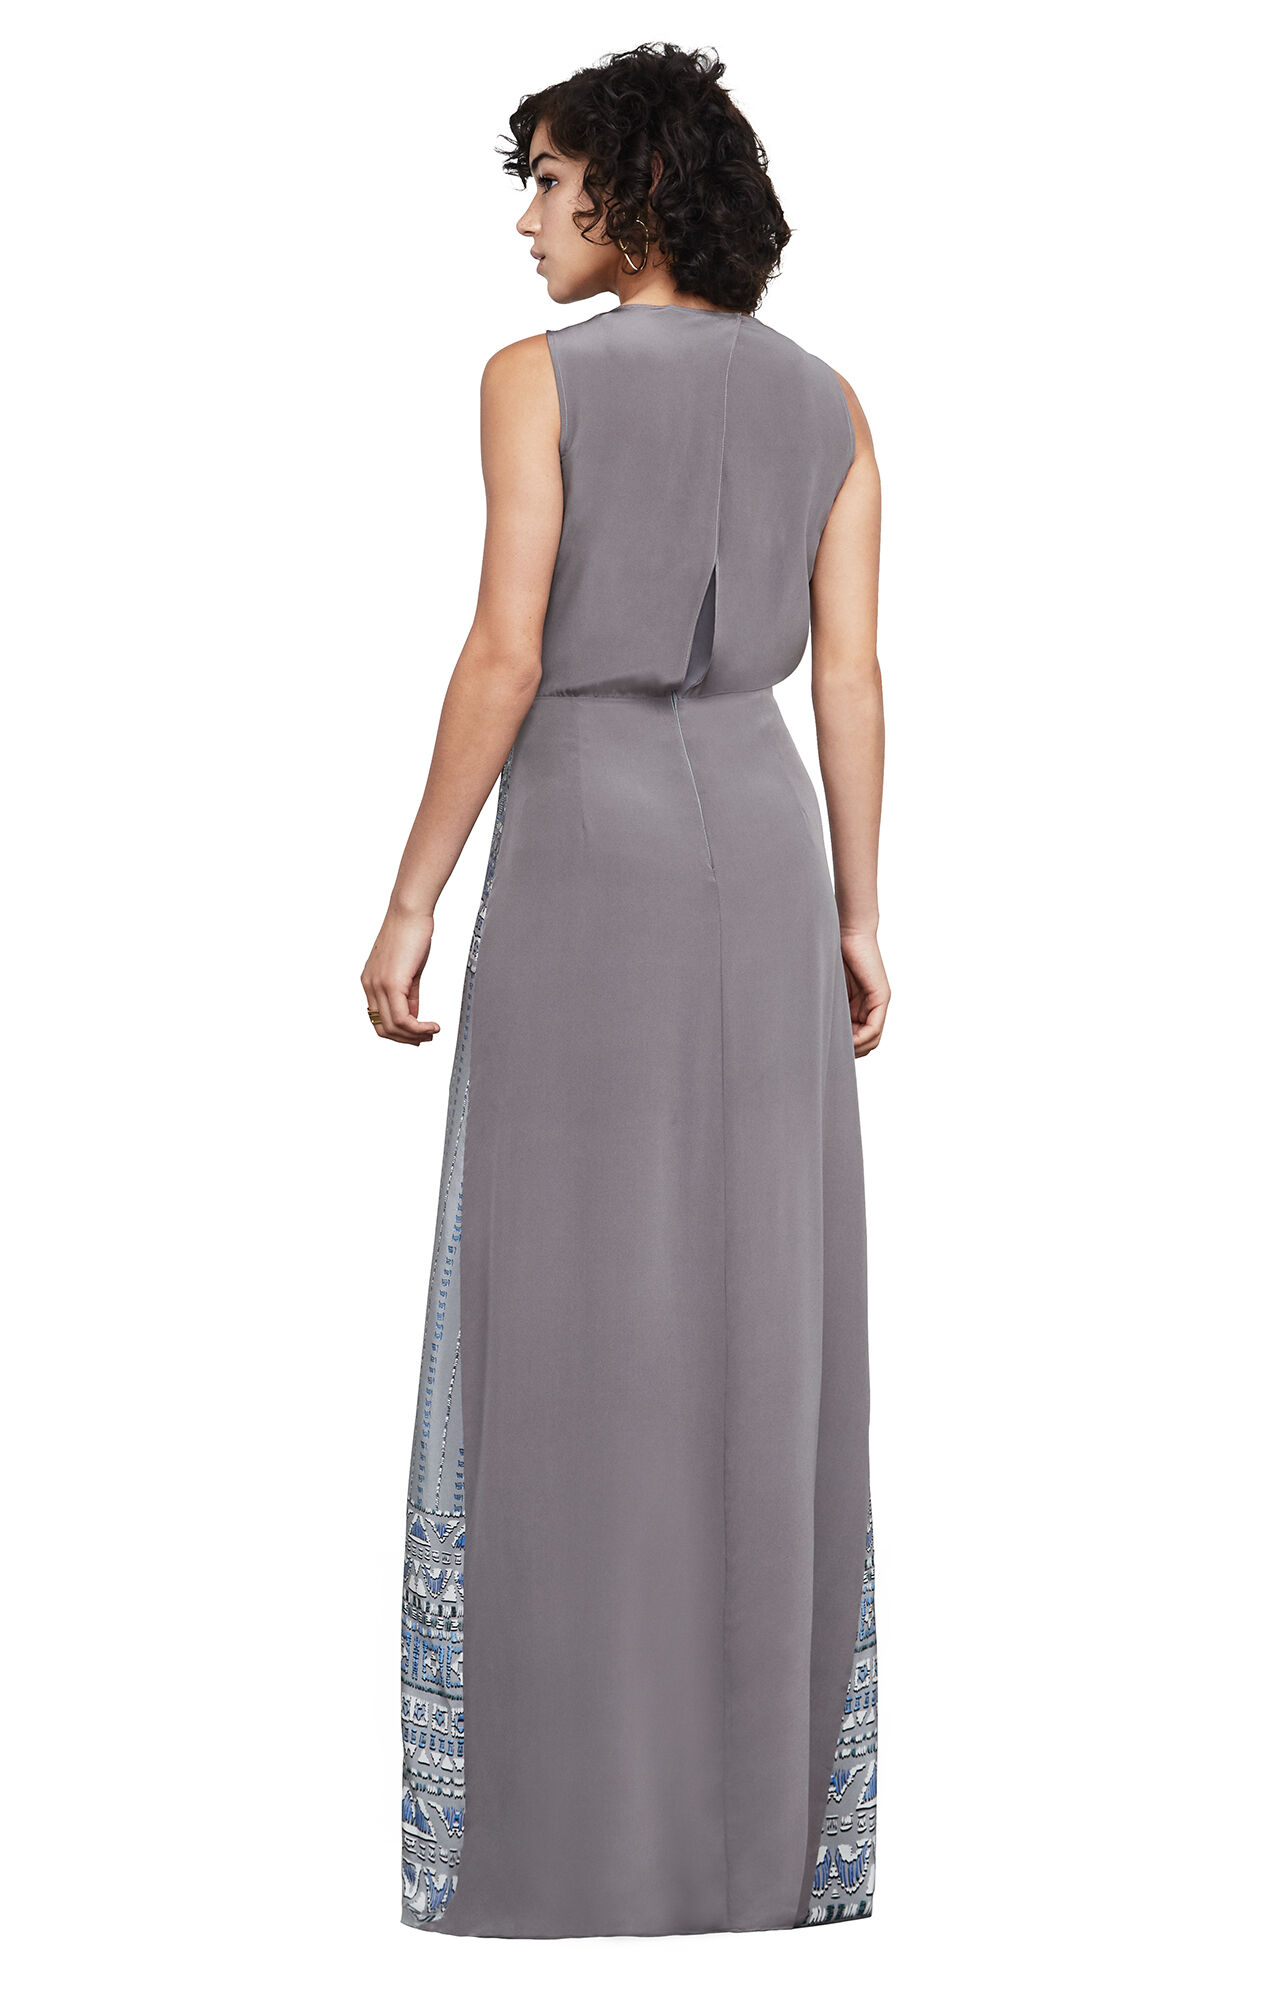 Find great deals on eBay for new york and company sleeveless dress. Shop with confidence.